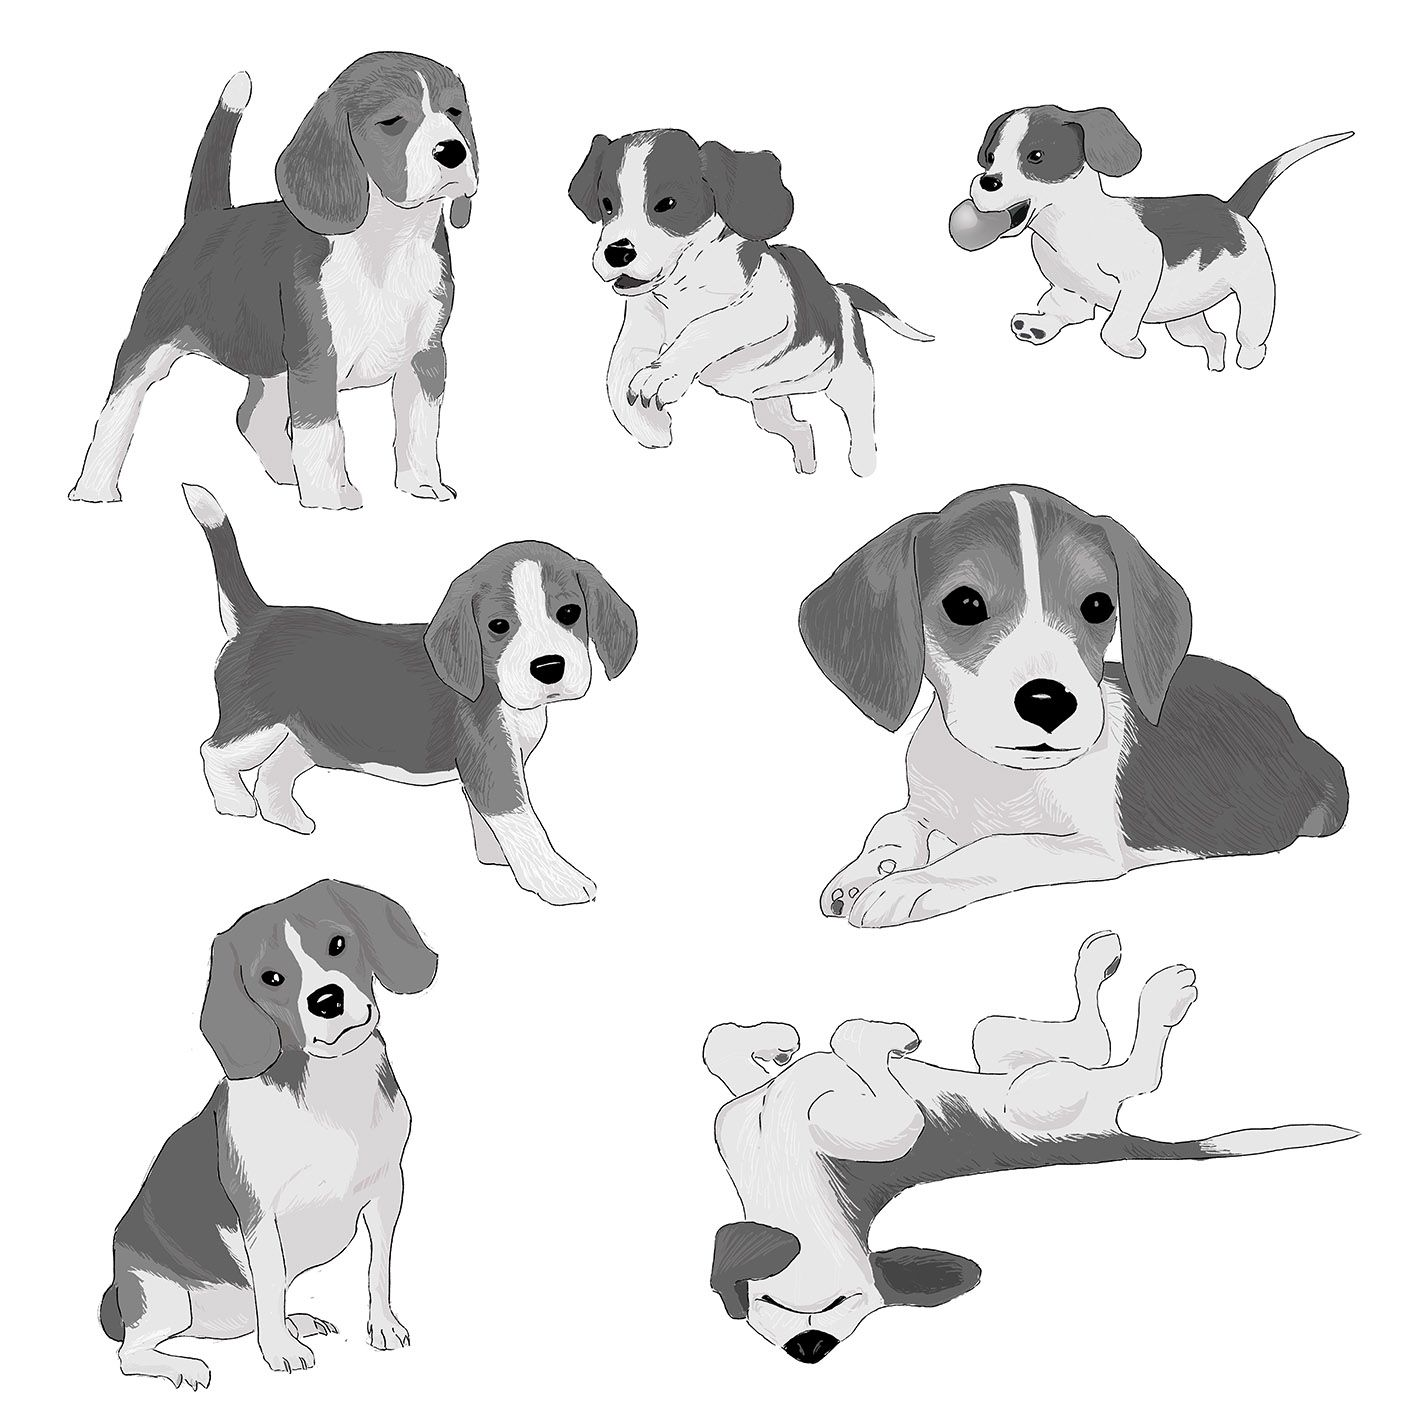 I Ve Been Drawing Dogs For A Project I Never Really Do Them